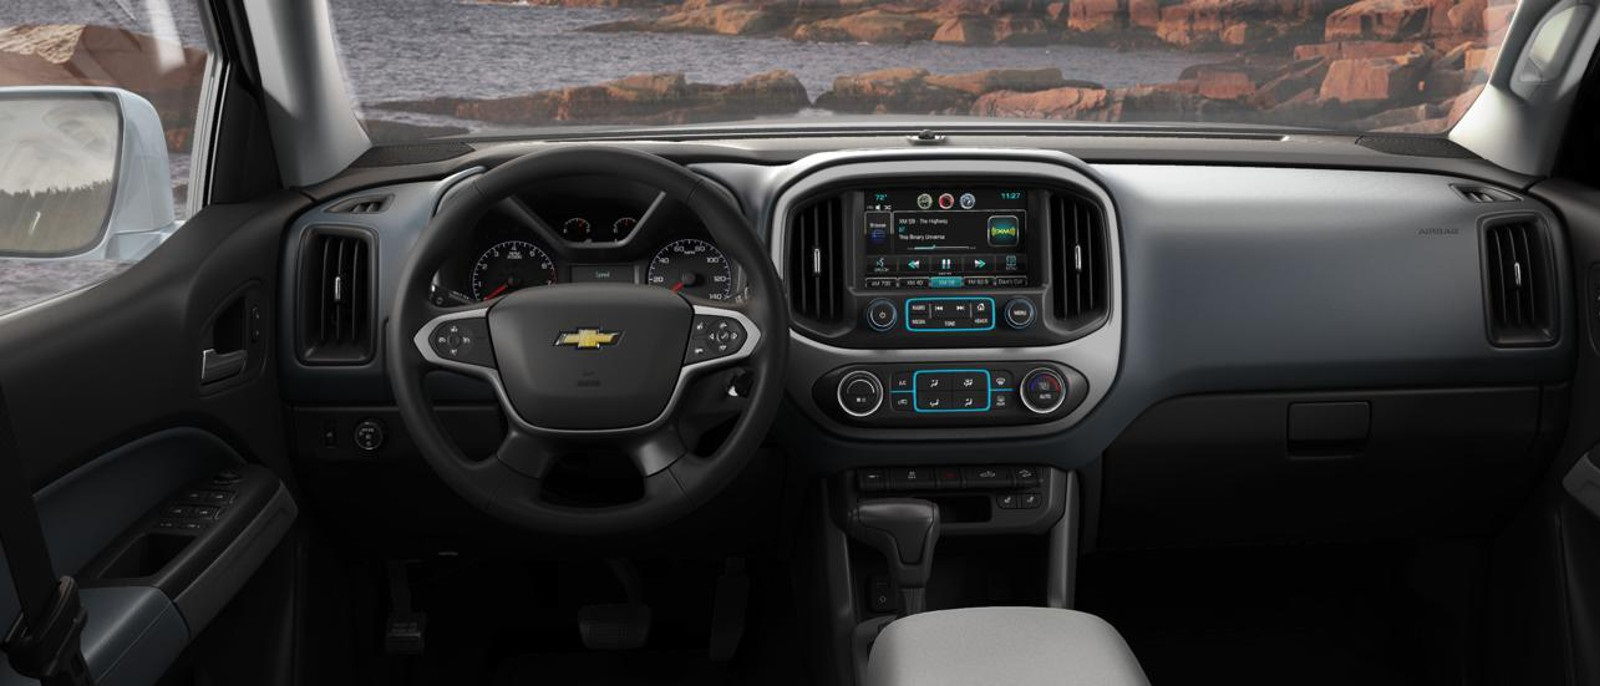 Chevy Dealership Memphis 2017 Chevy Colorado is Coming to Bradenton and Memphis